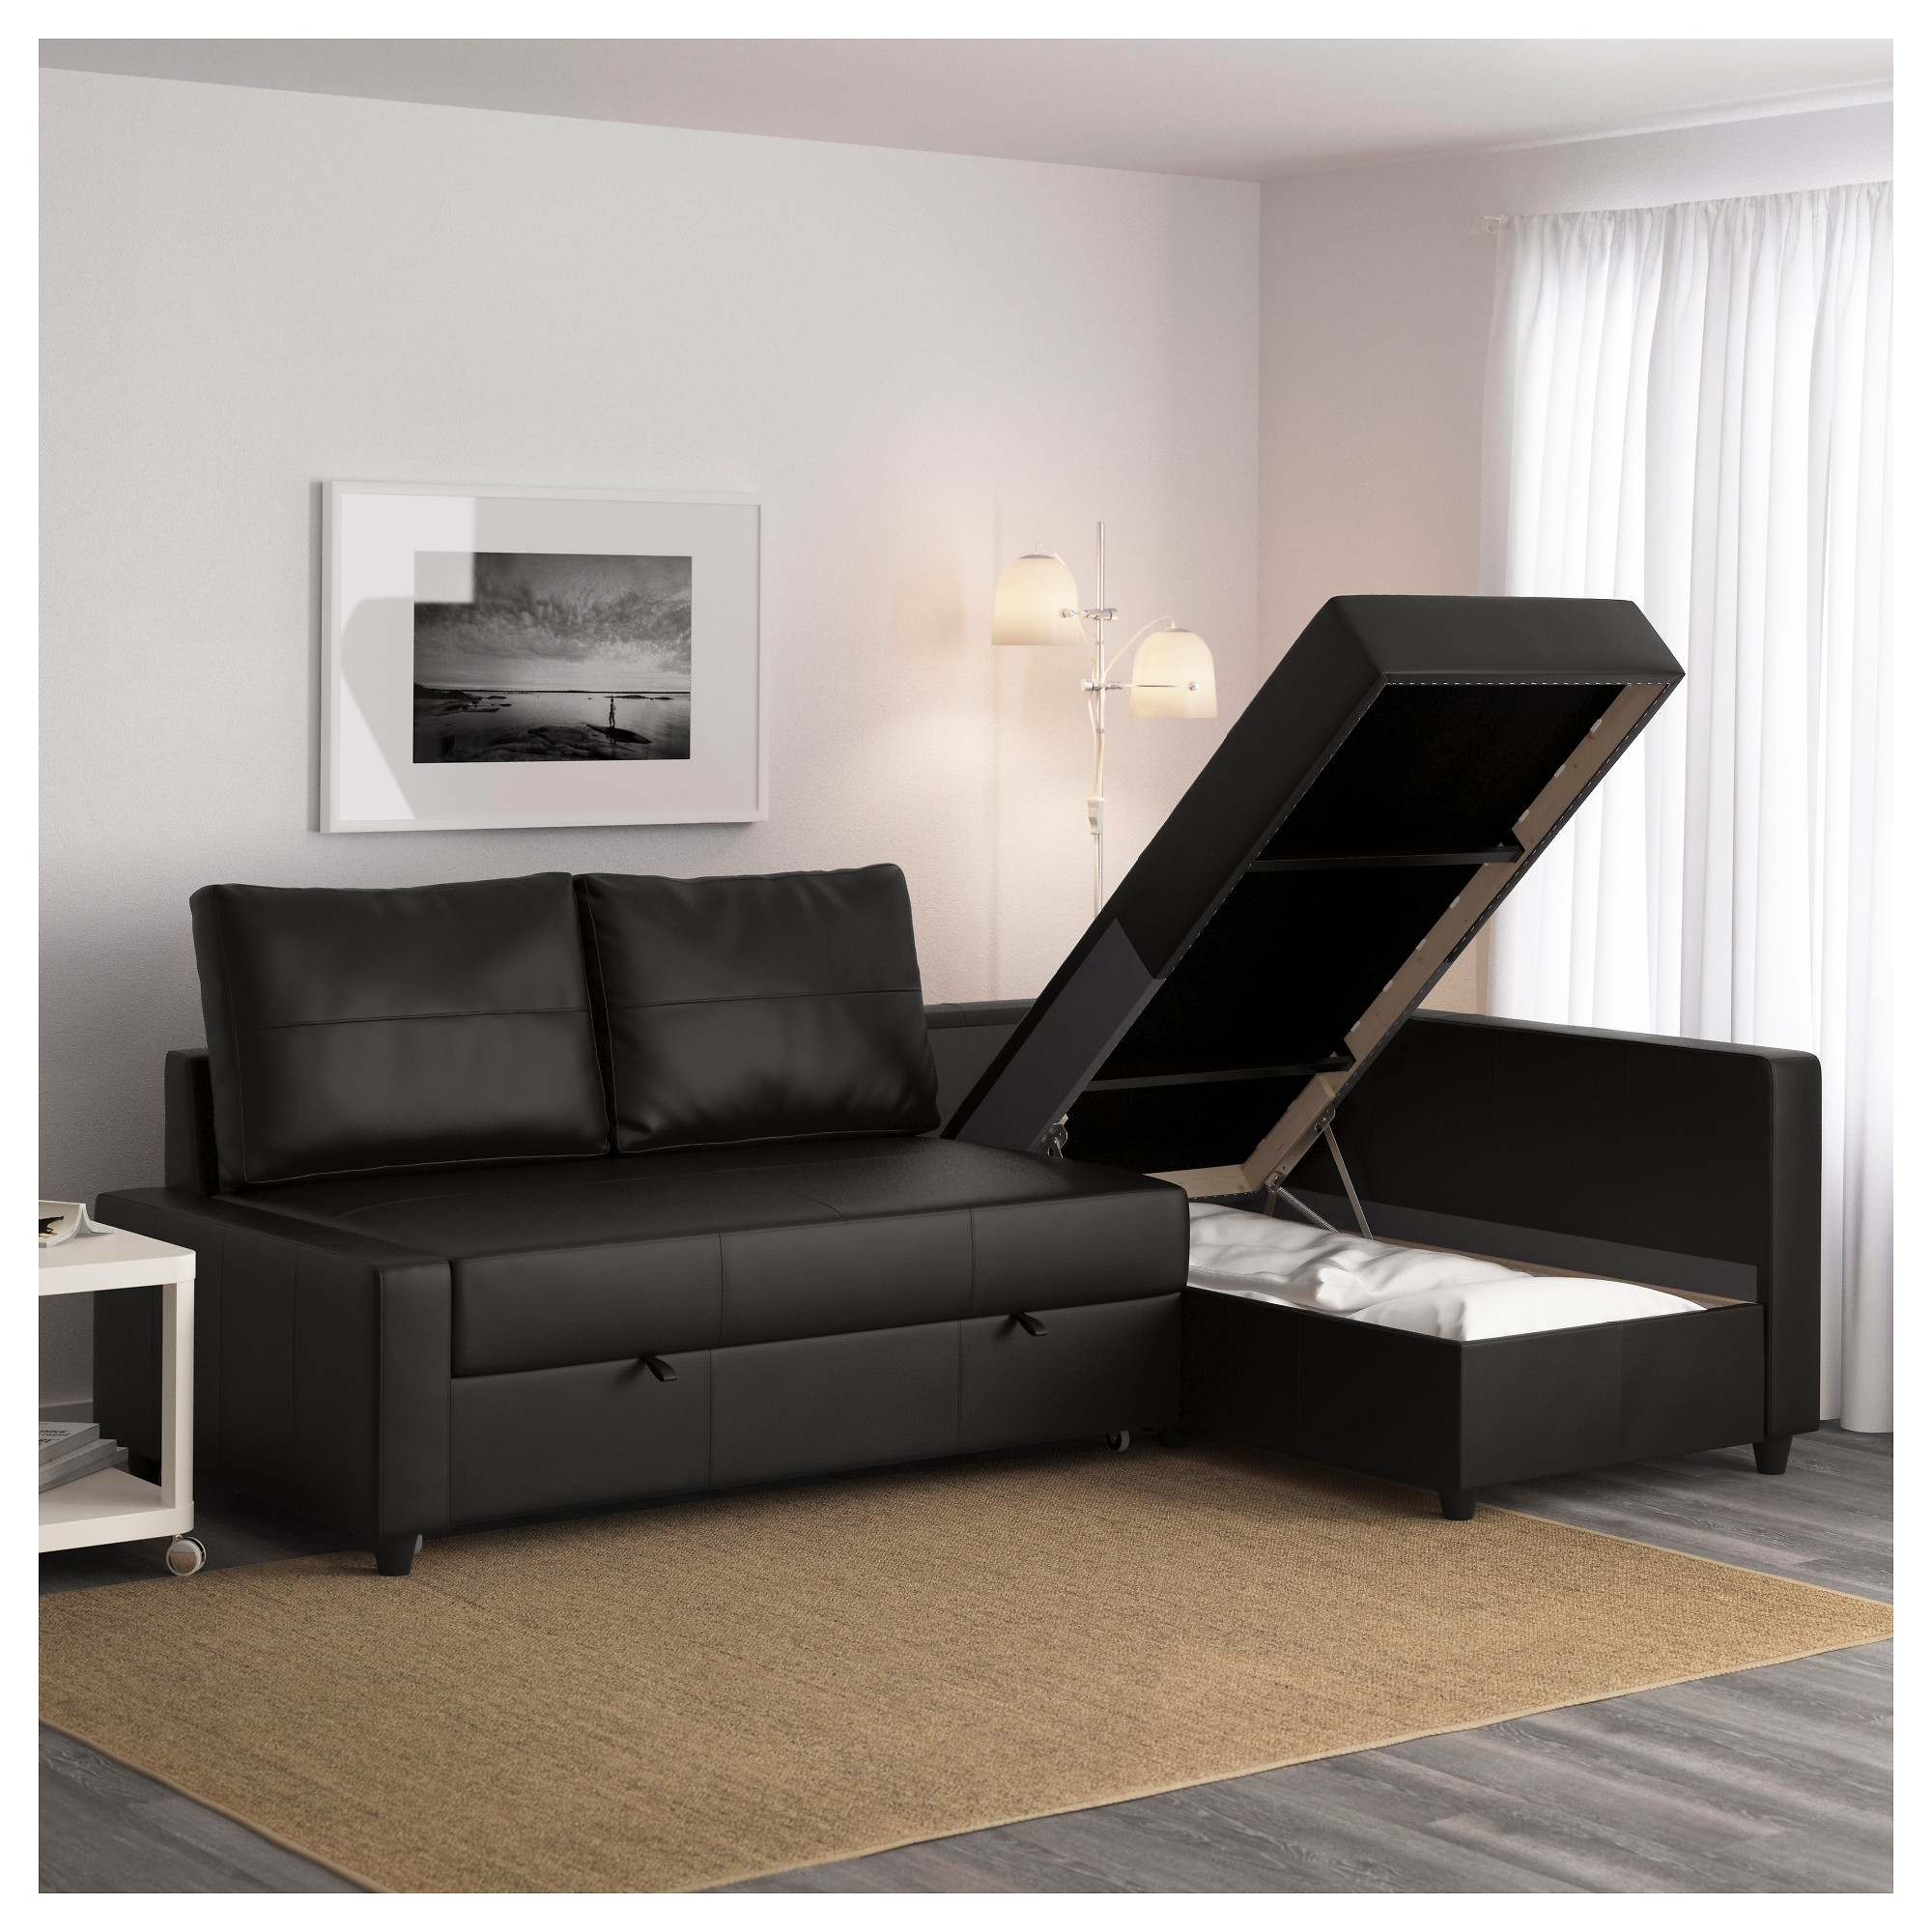 Friheten Sleeper Sectional,3 Seat W/storage – Skiftebo Dark Gray In Most Recent Ikea Chaise Sofas (View 6 of 15)